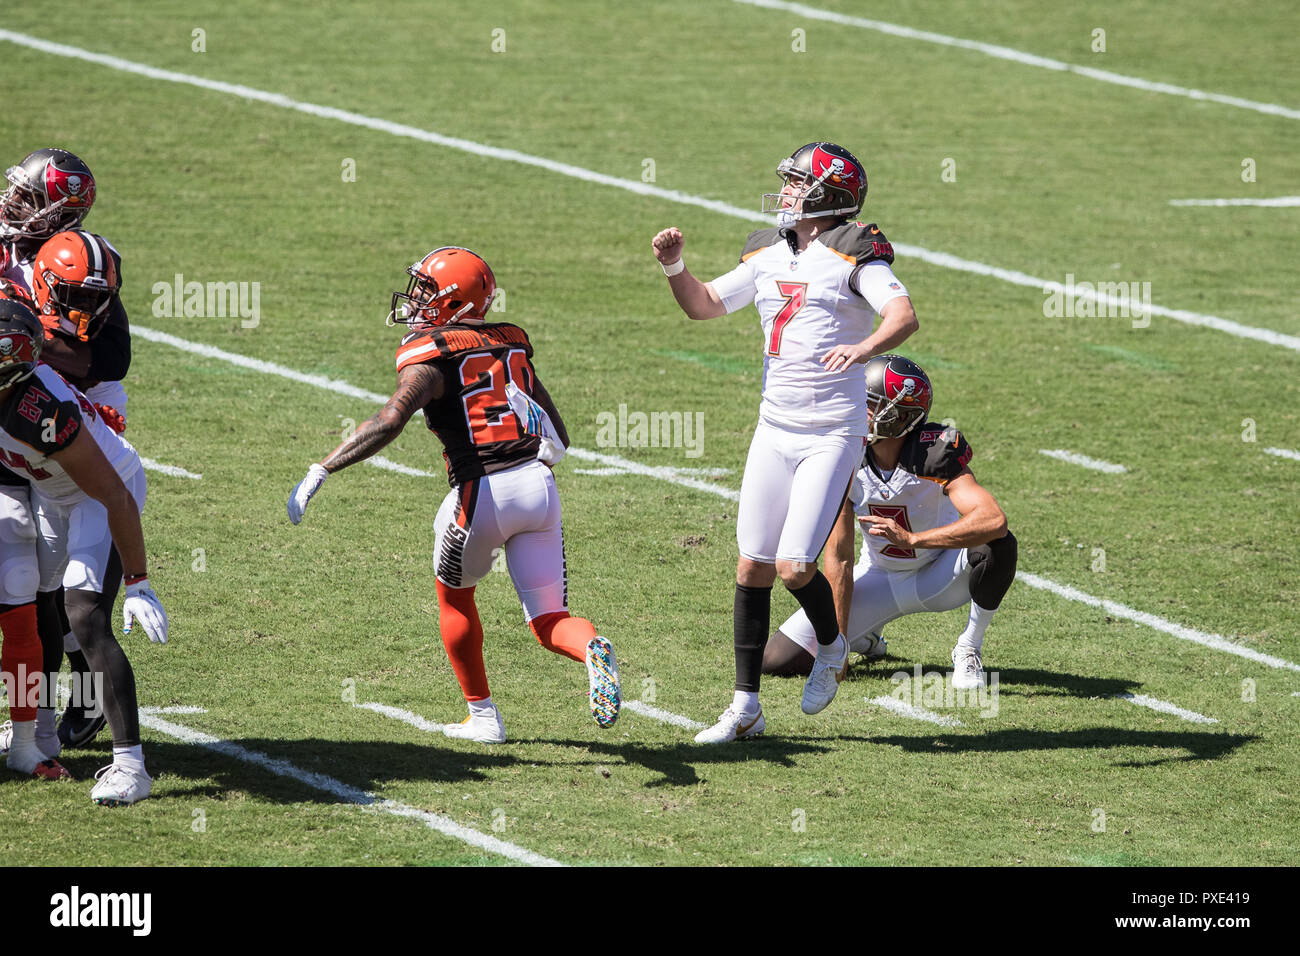 a7cd37b48 Tampa, Florida, USA. 21st Oct, 2018. Tampa Bay Buccaneers kicker Chandler  Catanzaro (7) completes a 29 ...